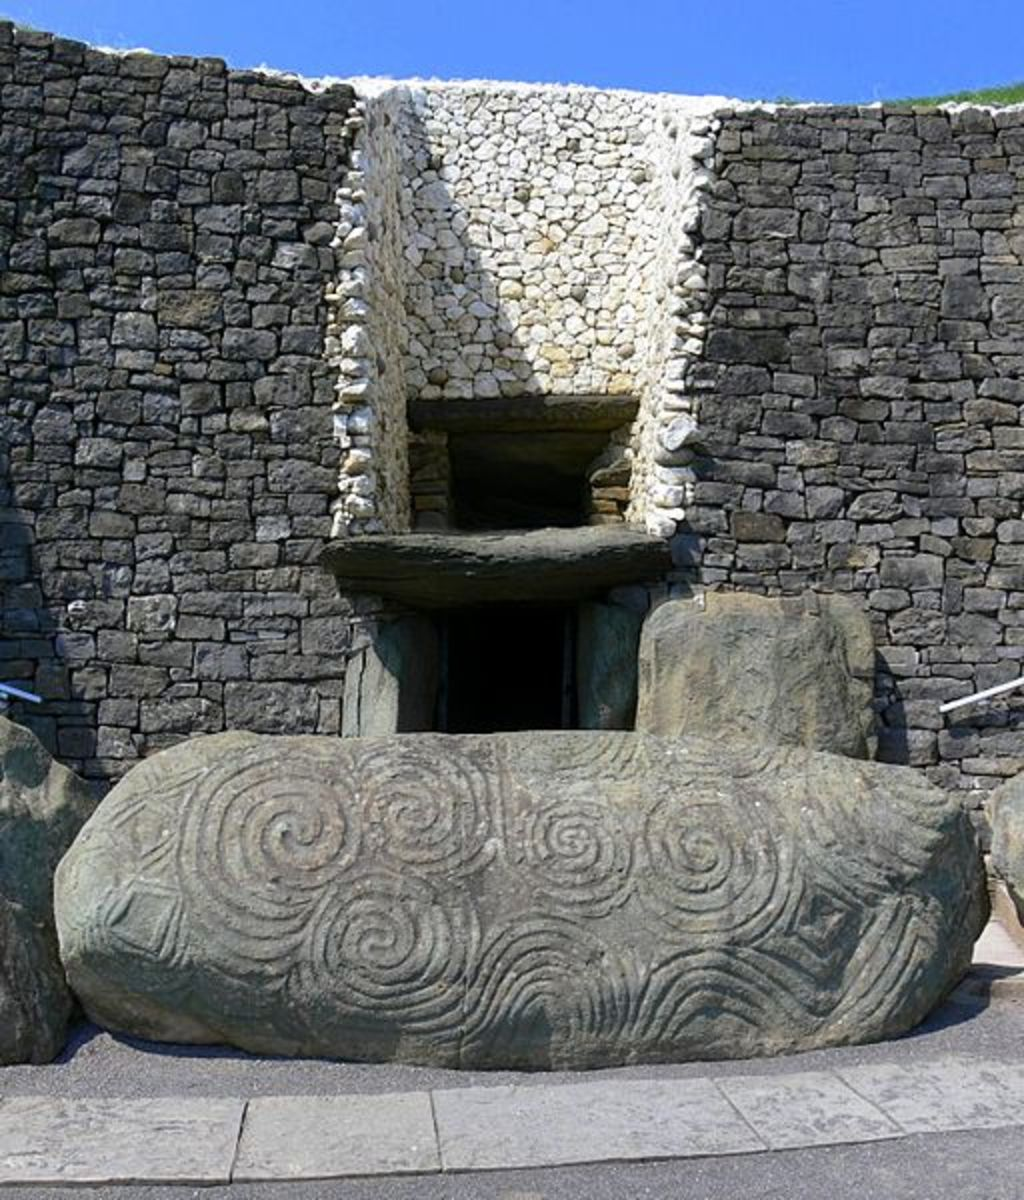 Stone with Celtic art engravings at entrance to megalith tomb at Newgrange